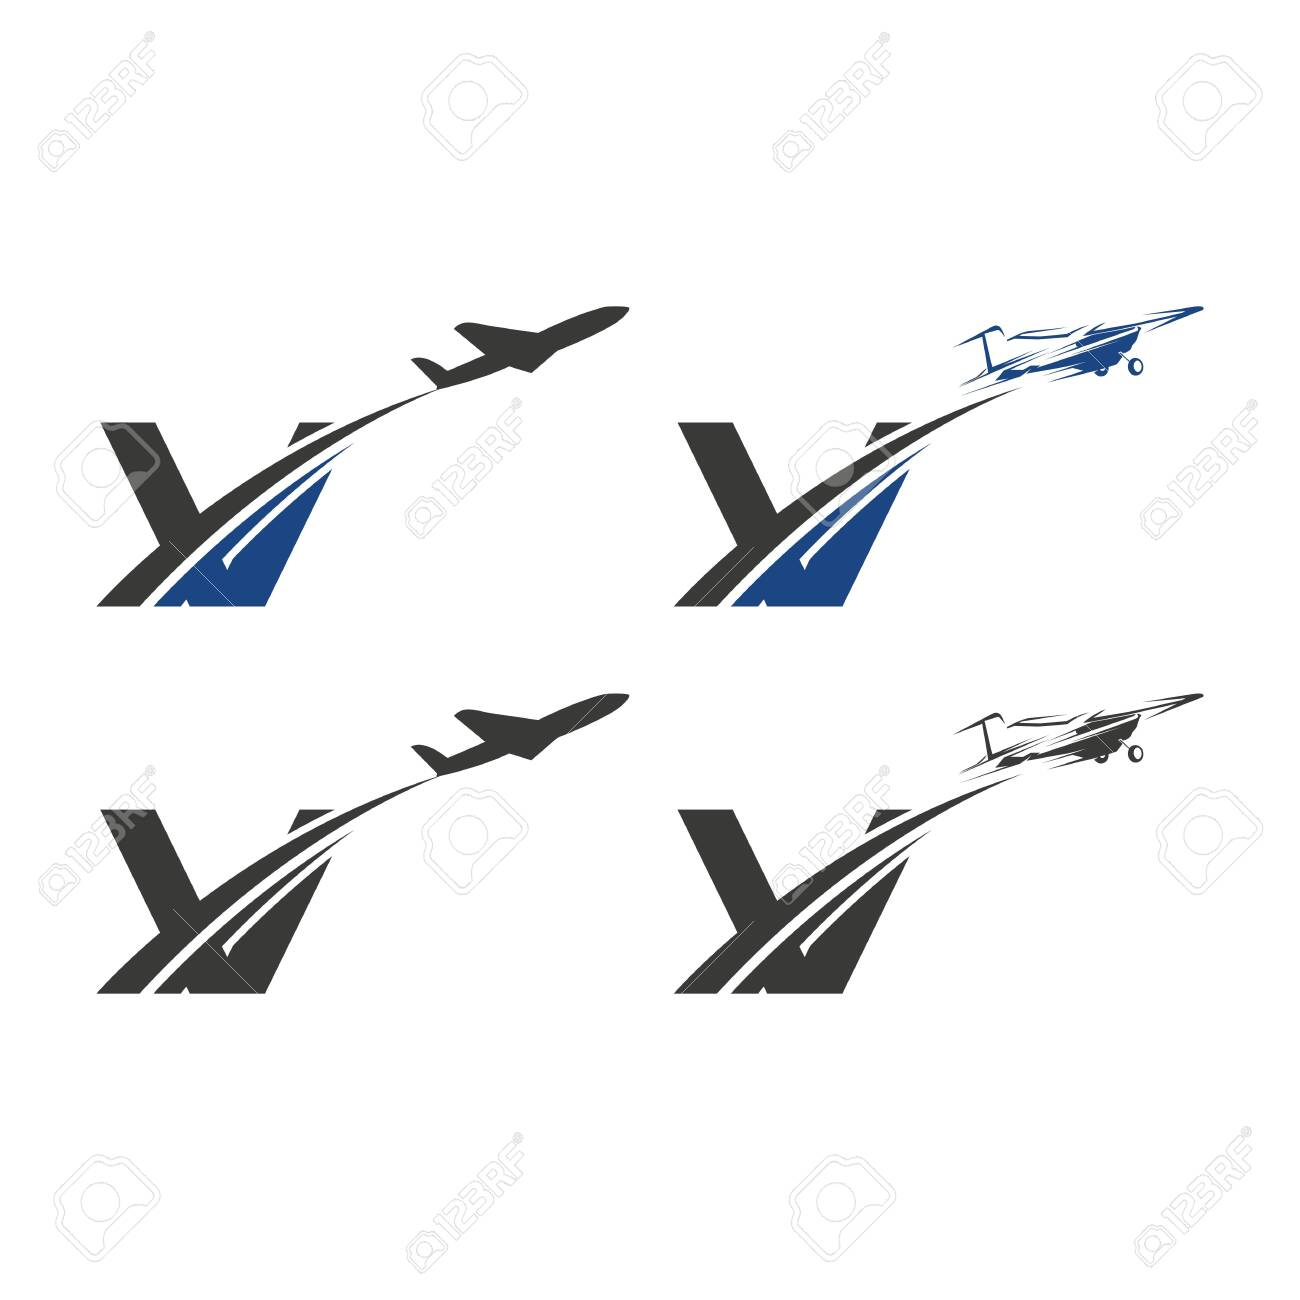 V Letter With Aviation Logo Design Template Letter With Airline Royalty Free Cliparts Vectors And Stock Illustration Image 139012818